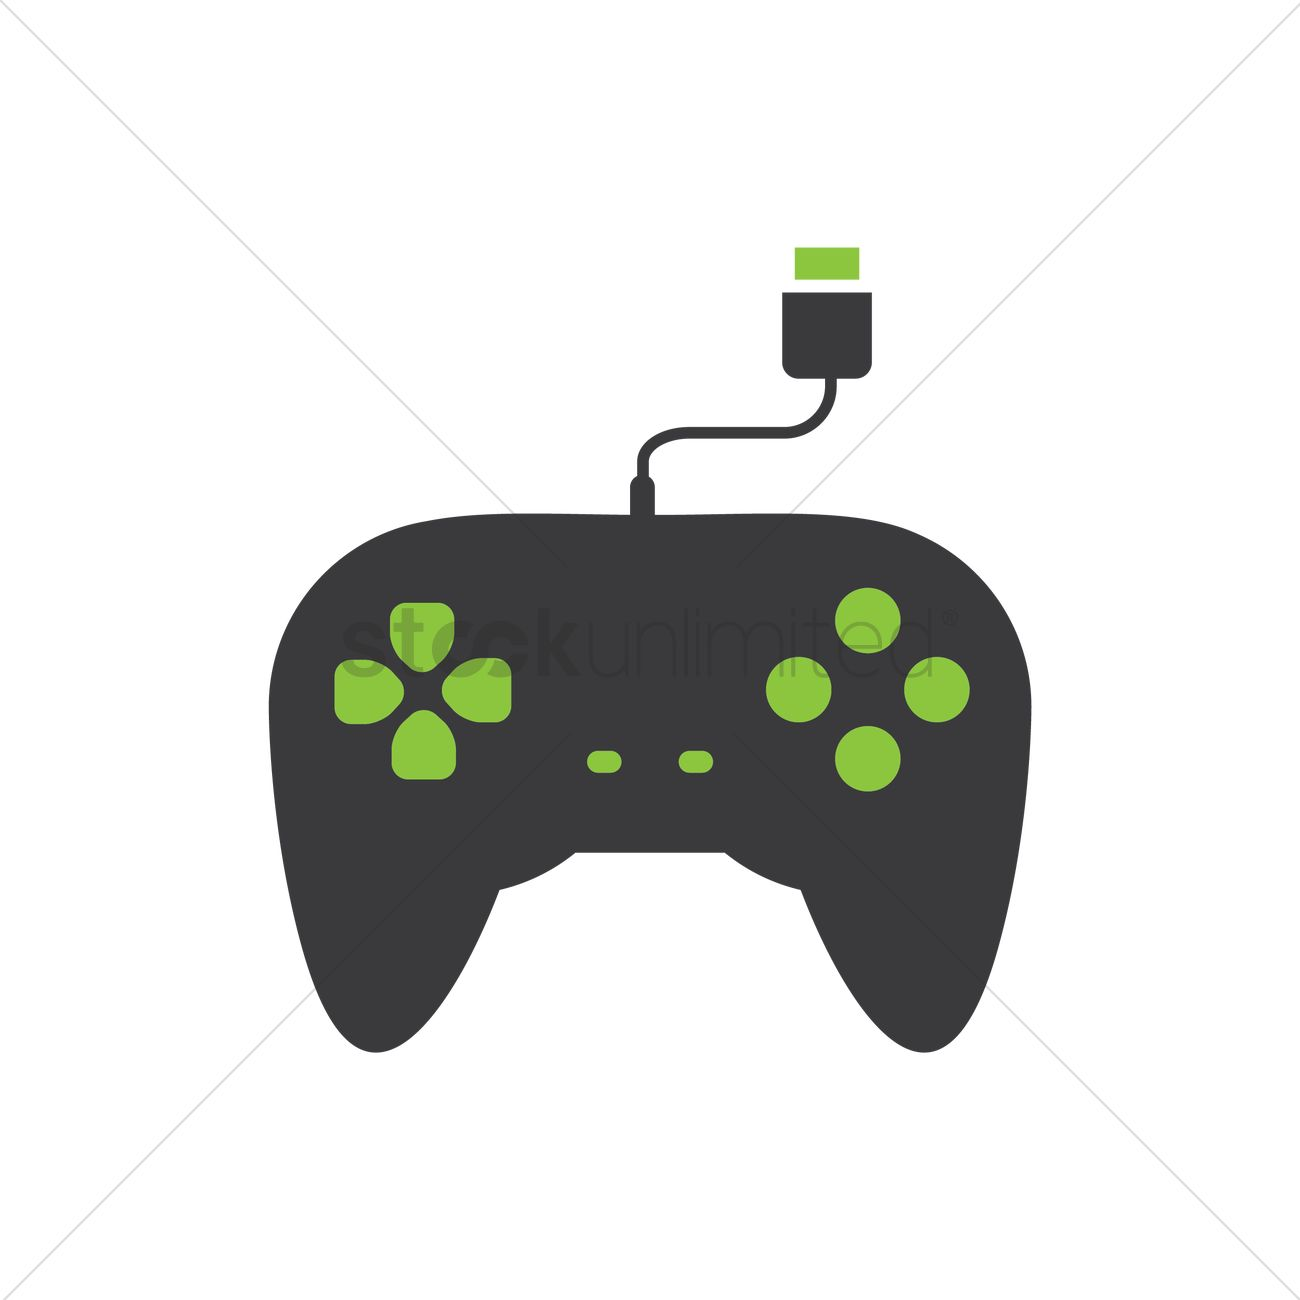 Game controller Vector Image - 1490567 | StockUnlimited